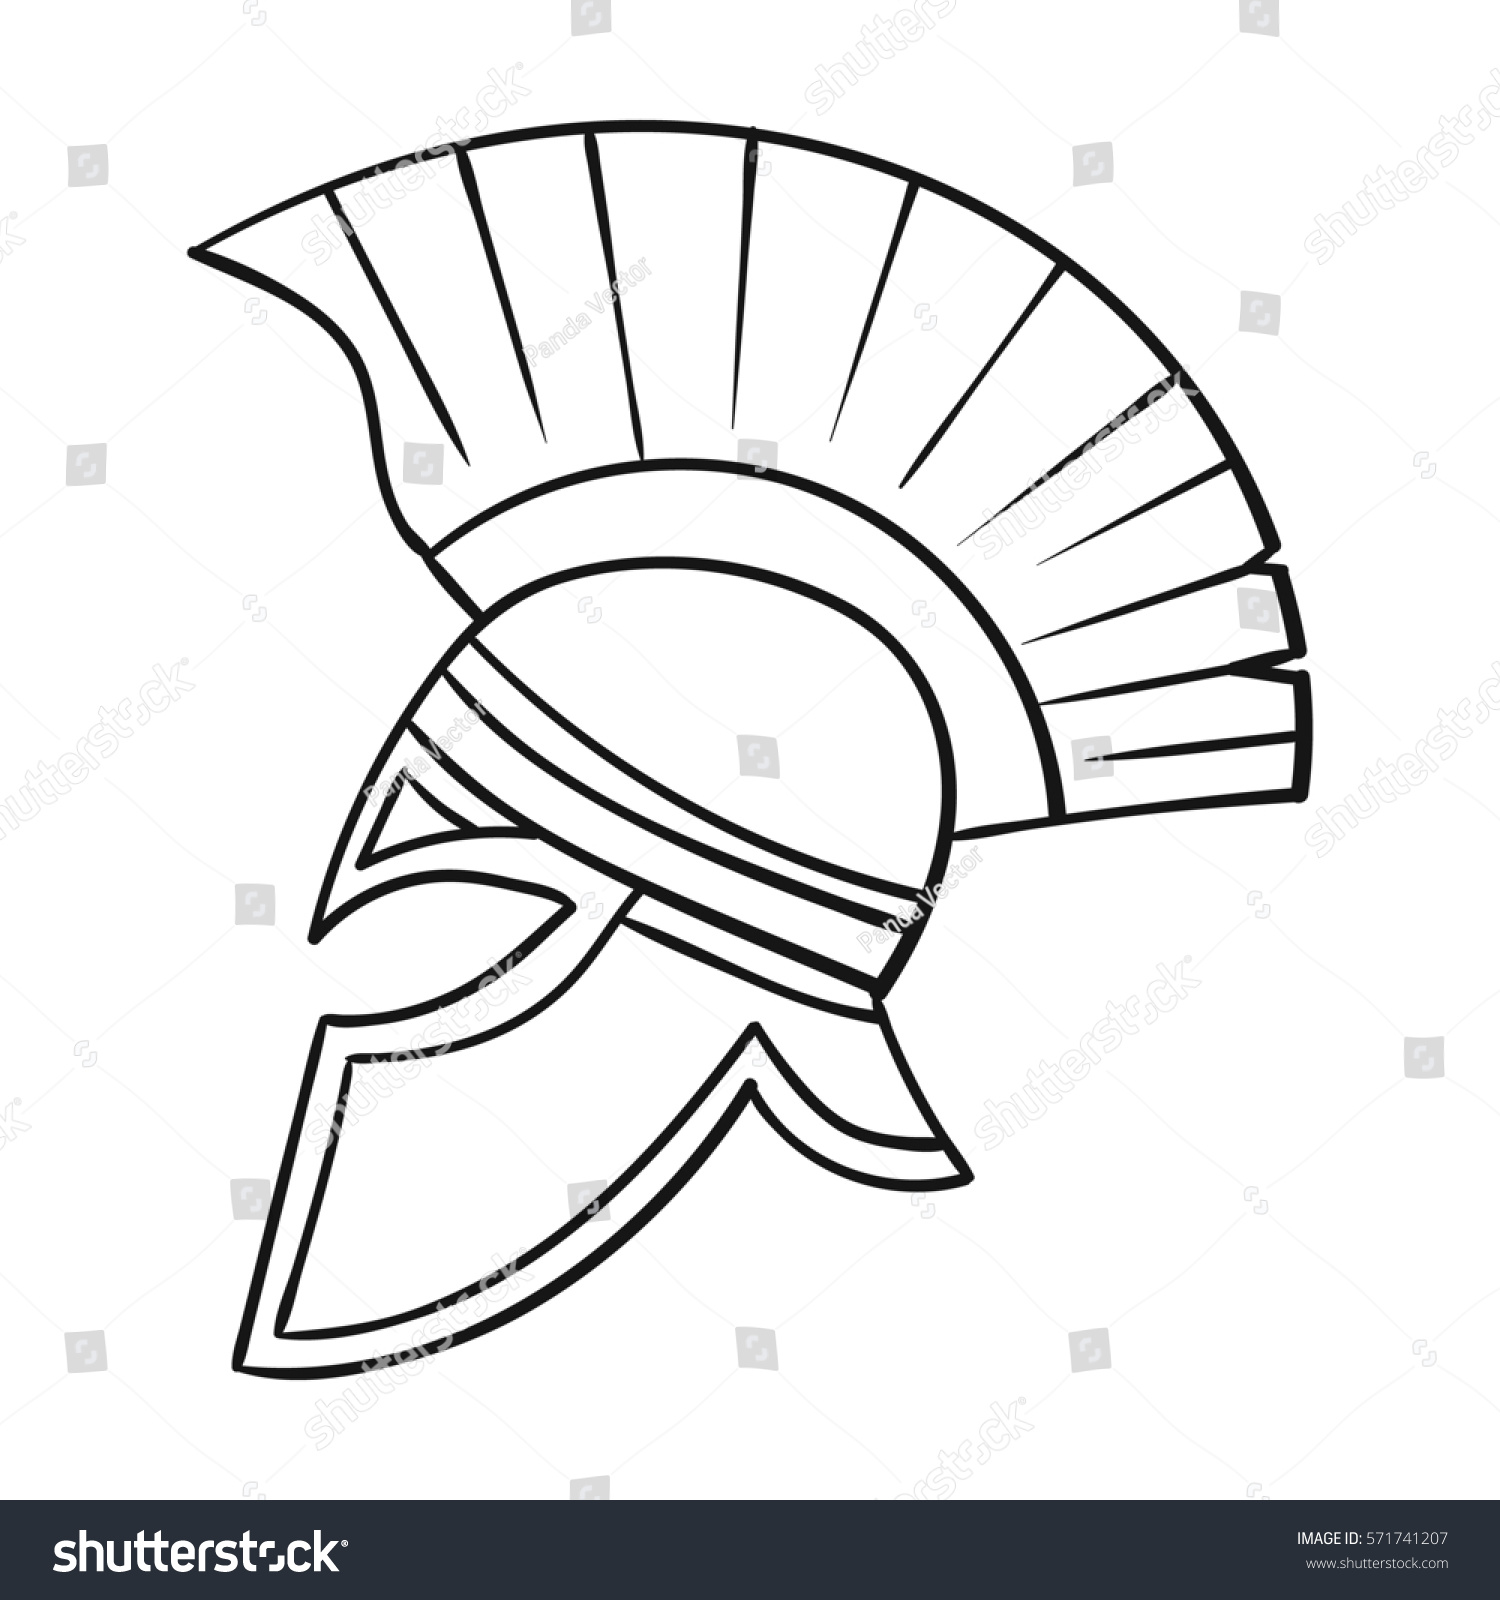 Royalty Free Roman Soldiers Helmet Icon In Outline 571741207